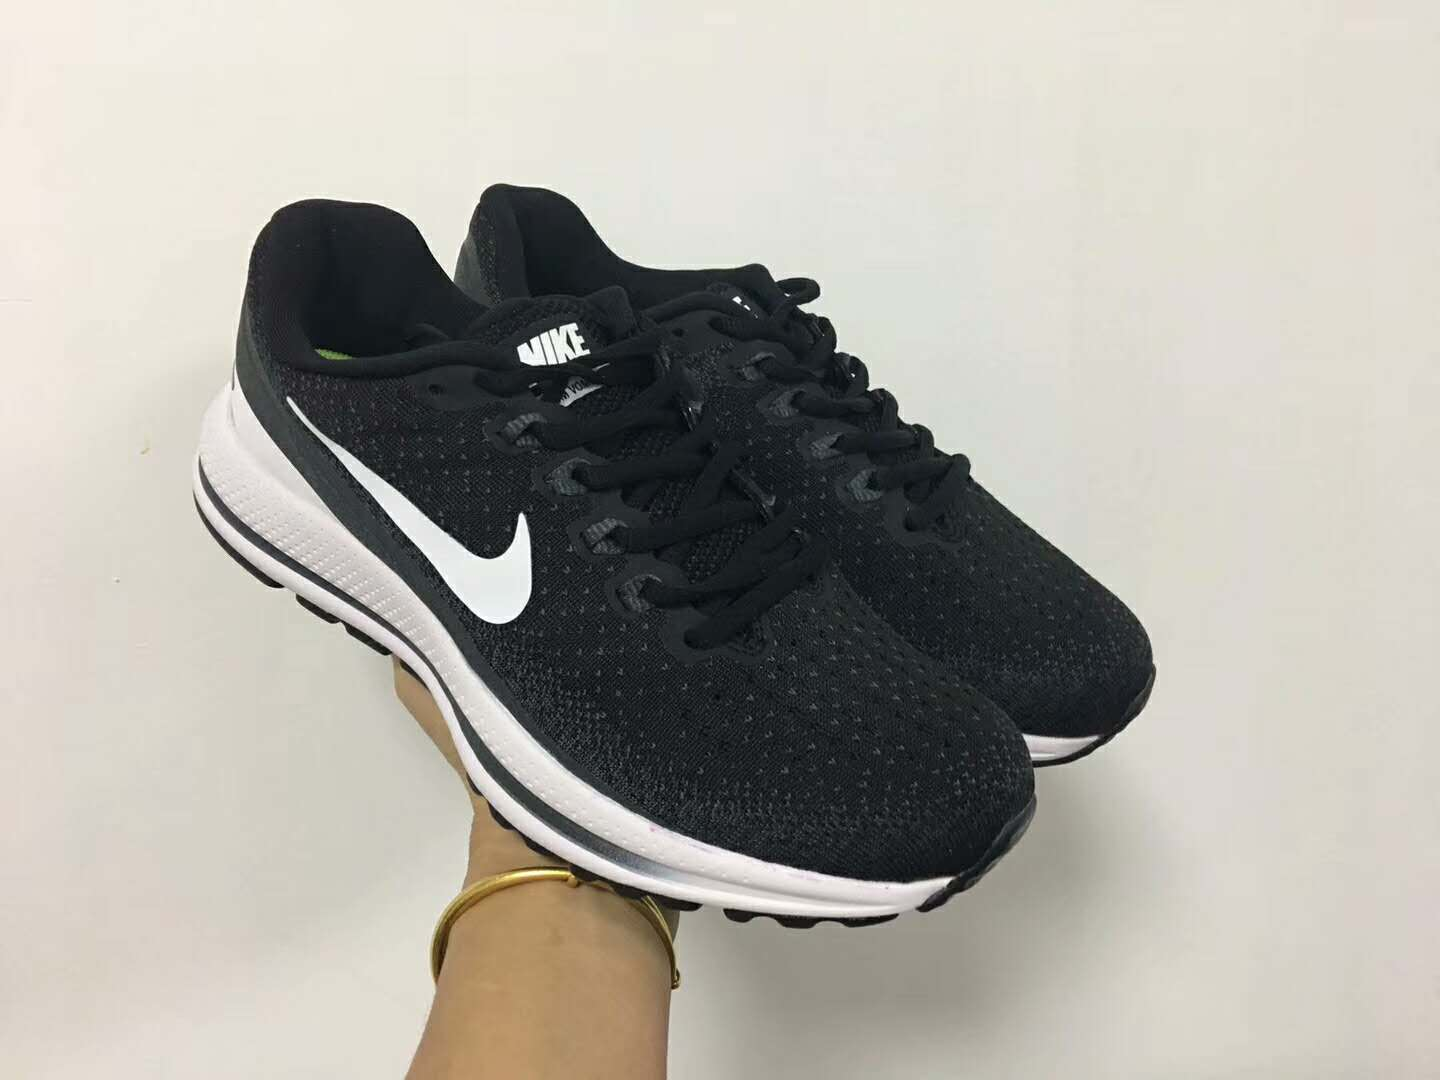 new arrival 93099 7ab1d Nike Flyknit Lunar 2 iD Black Shoes